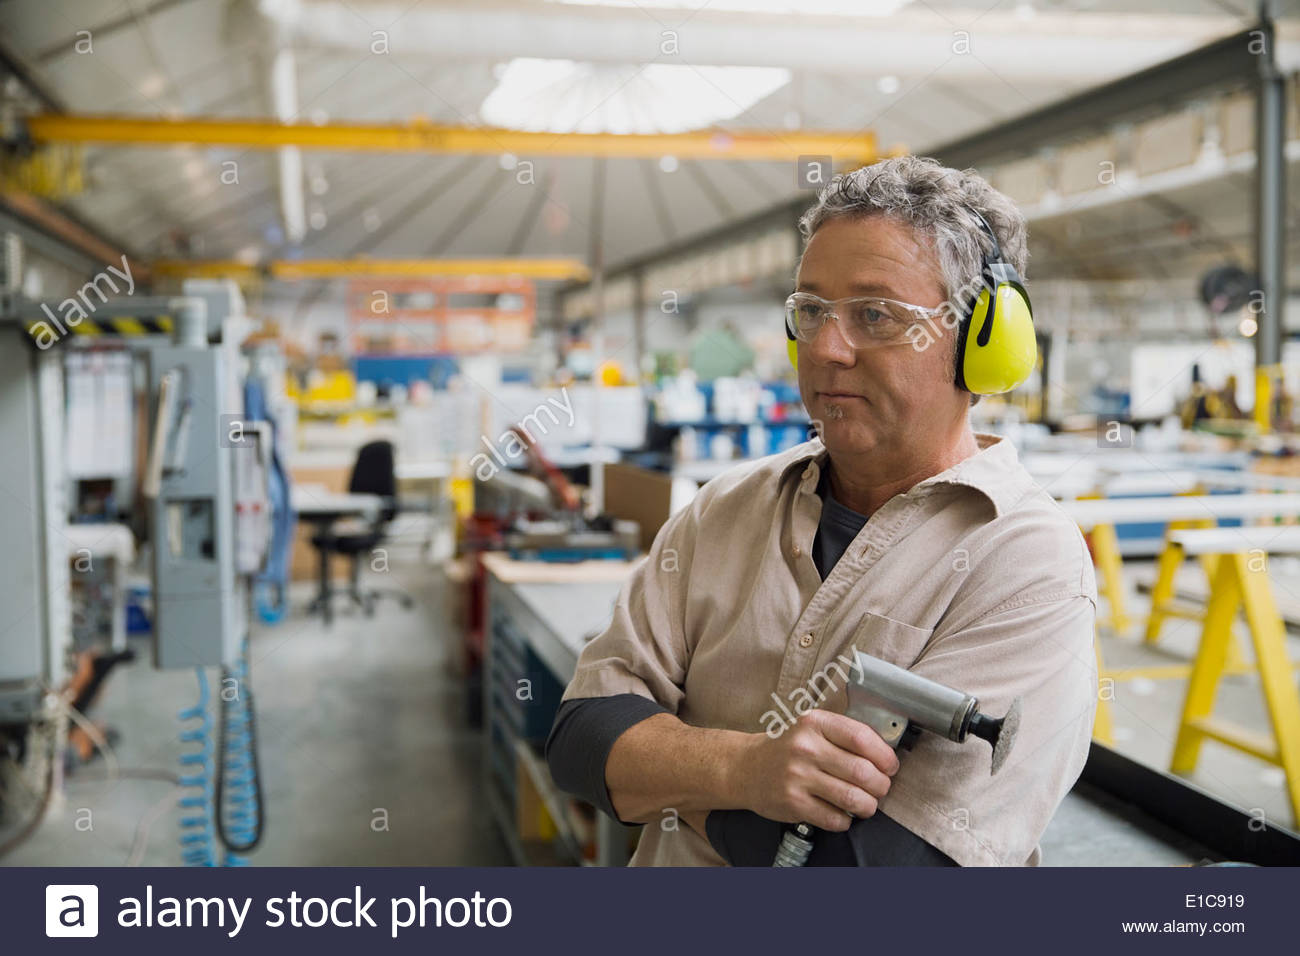 Worker with power sander in manufacturing plant - Stock Image